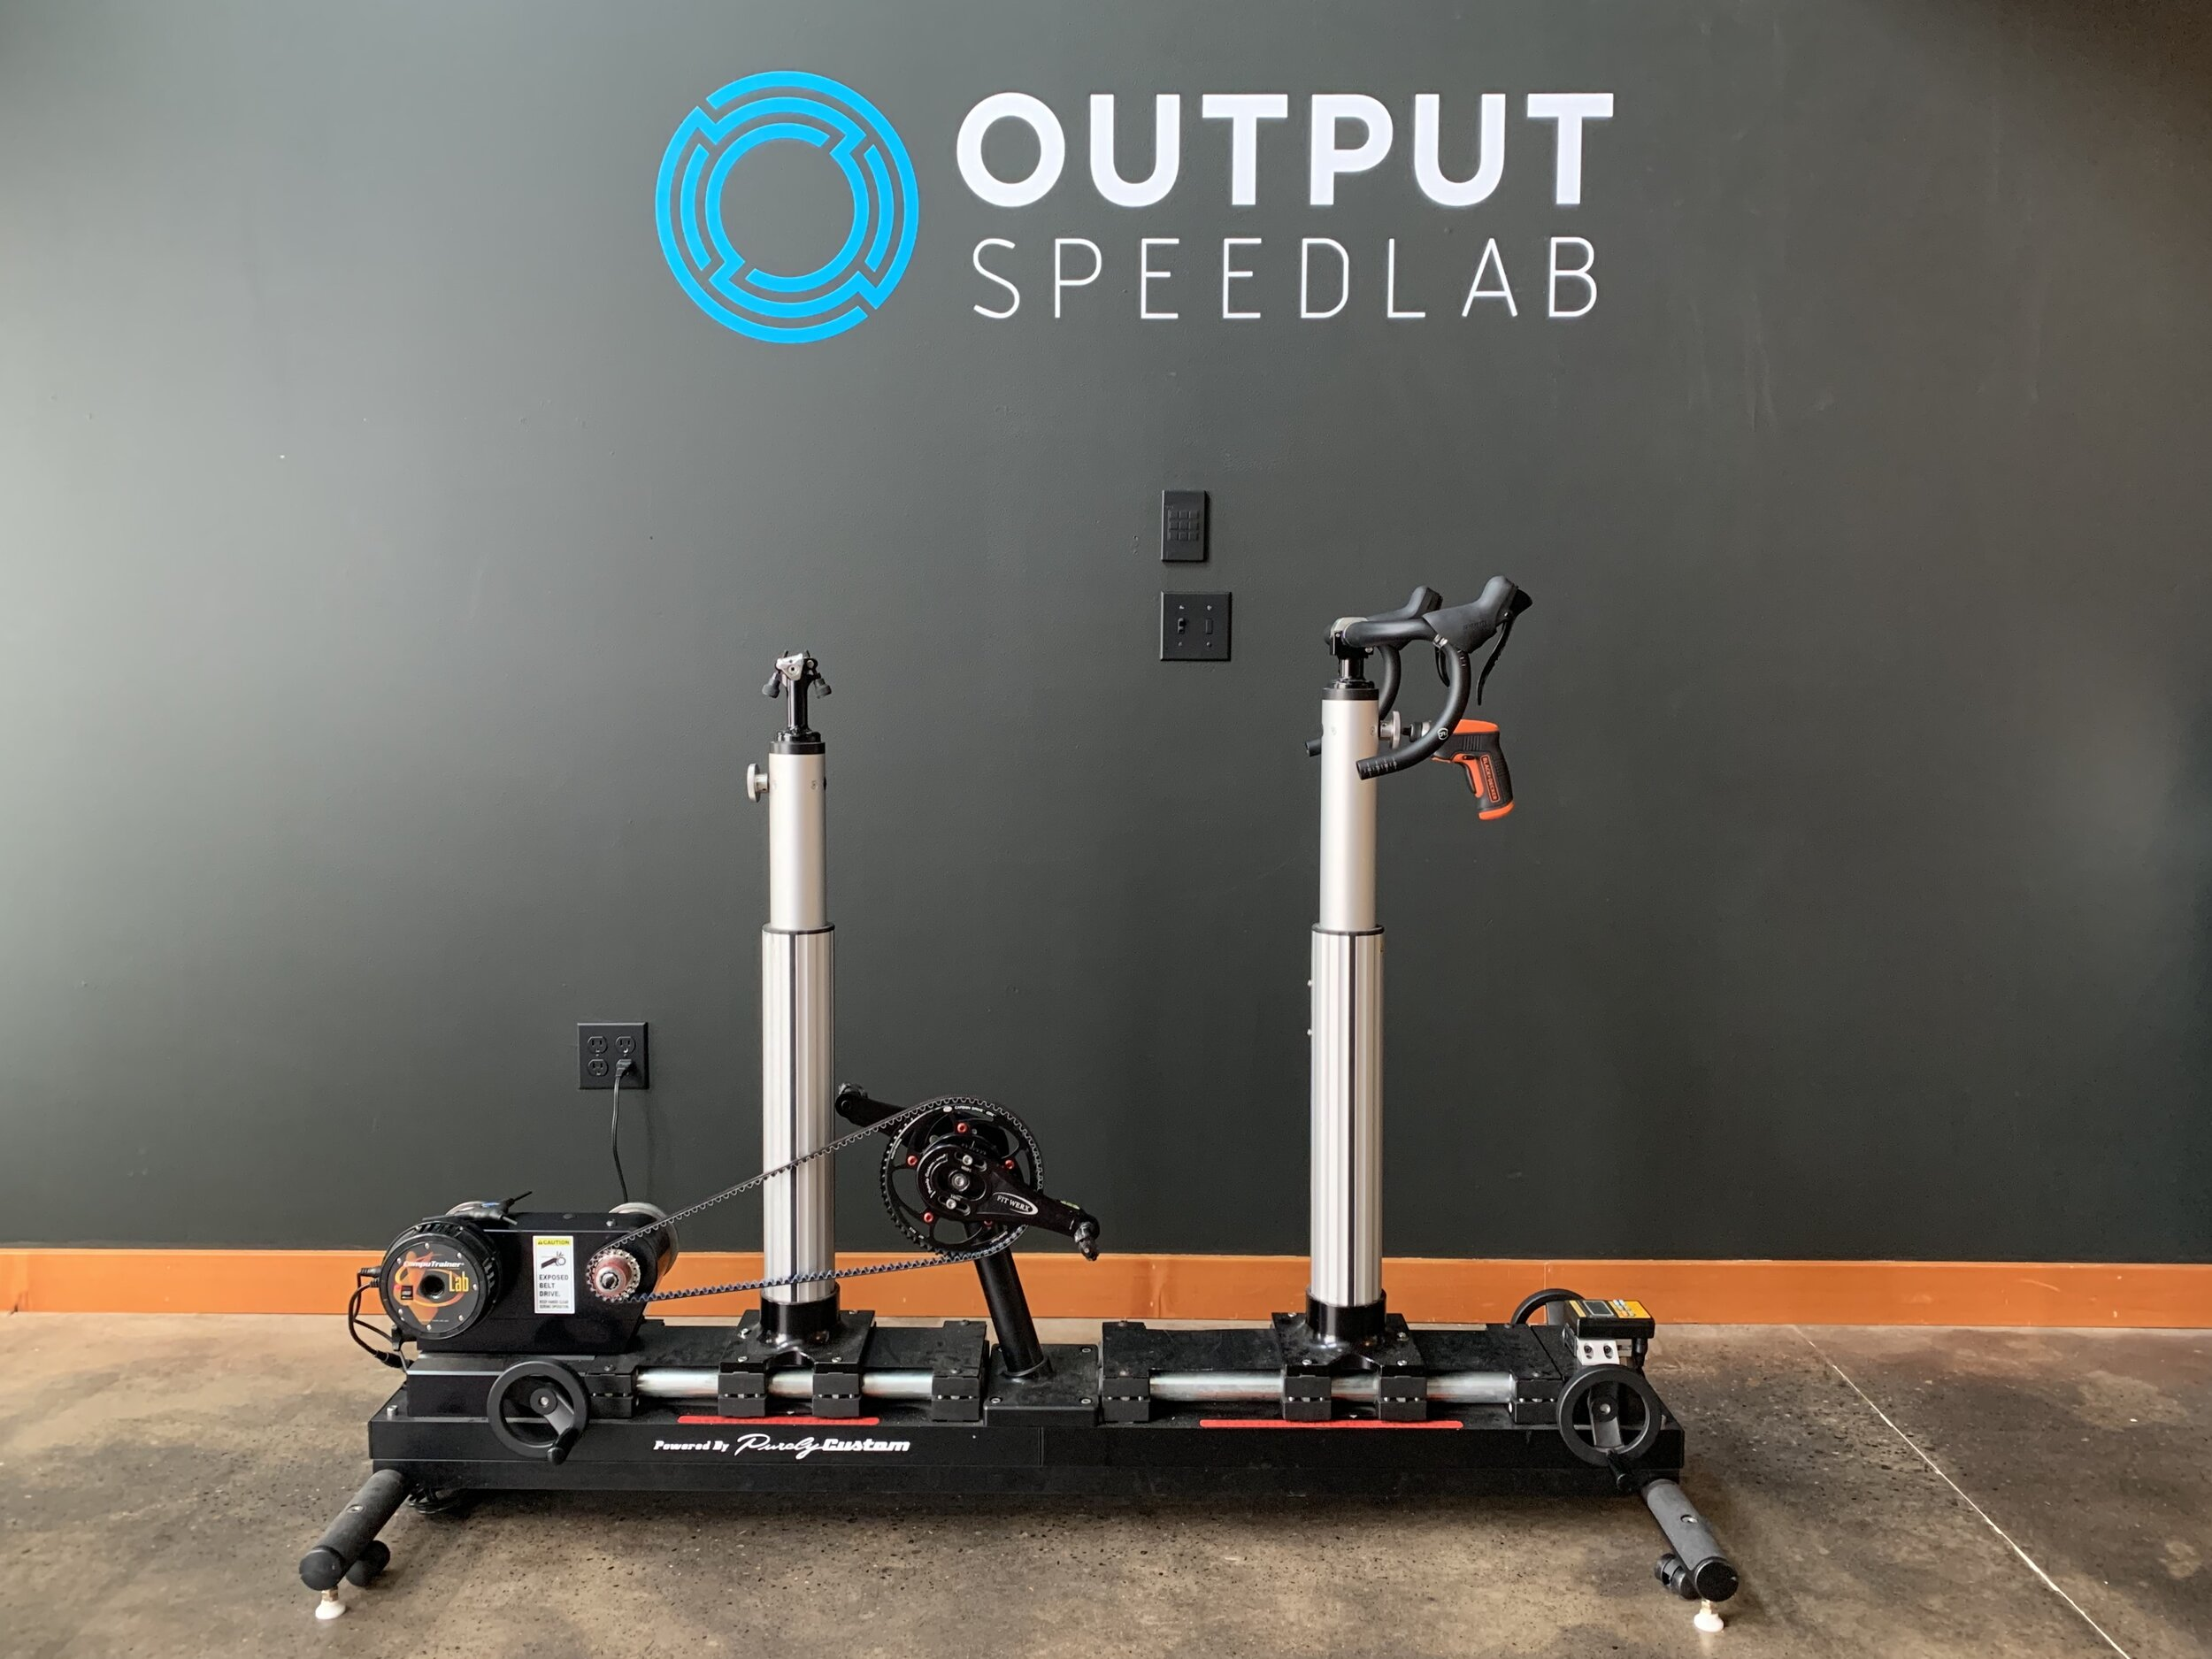 DYNAMIC FIT BIKE - The dynamic fit bike allows us to make rapid adjustments and iterations to rider position without the time consuming process of changing out components. This tool also allows us to capture your optimal position prior to purchasing a bike or even needing a bike on hand.